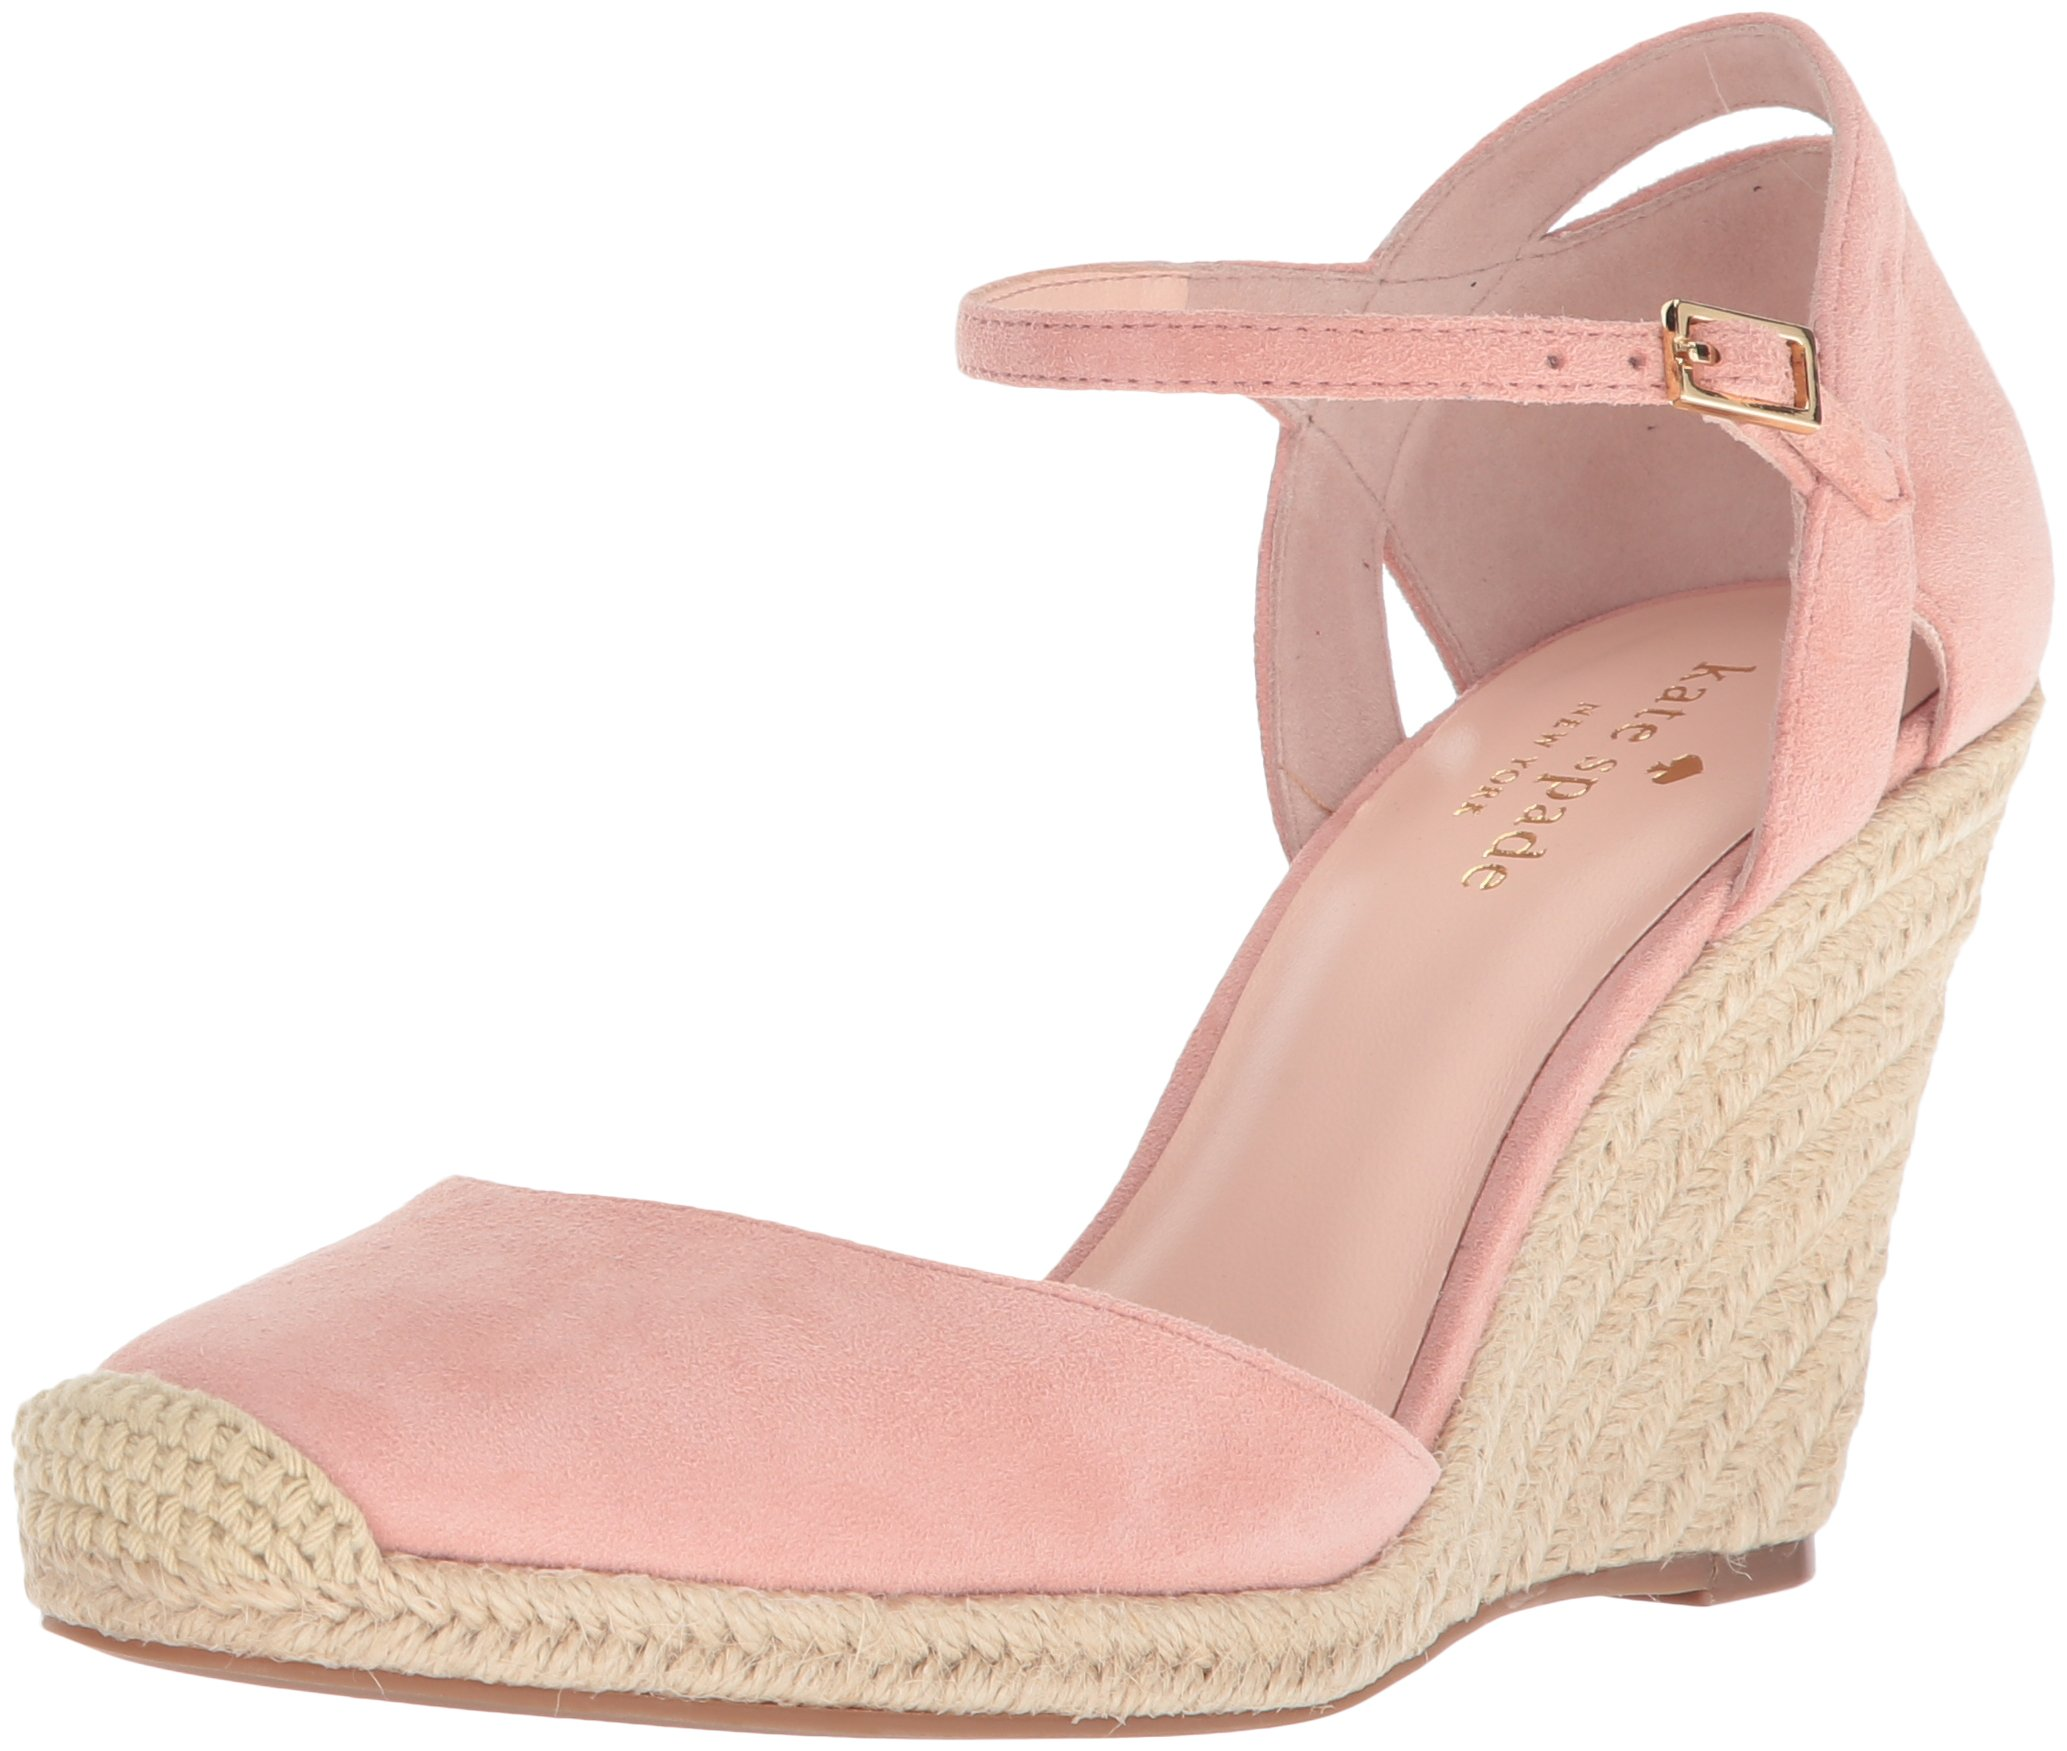 Kate Spade New York Women's Giovanna Espadrille Wedge Sandal, Pink Majolica Kid Suede, 7.5 Medium US